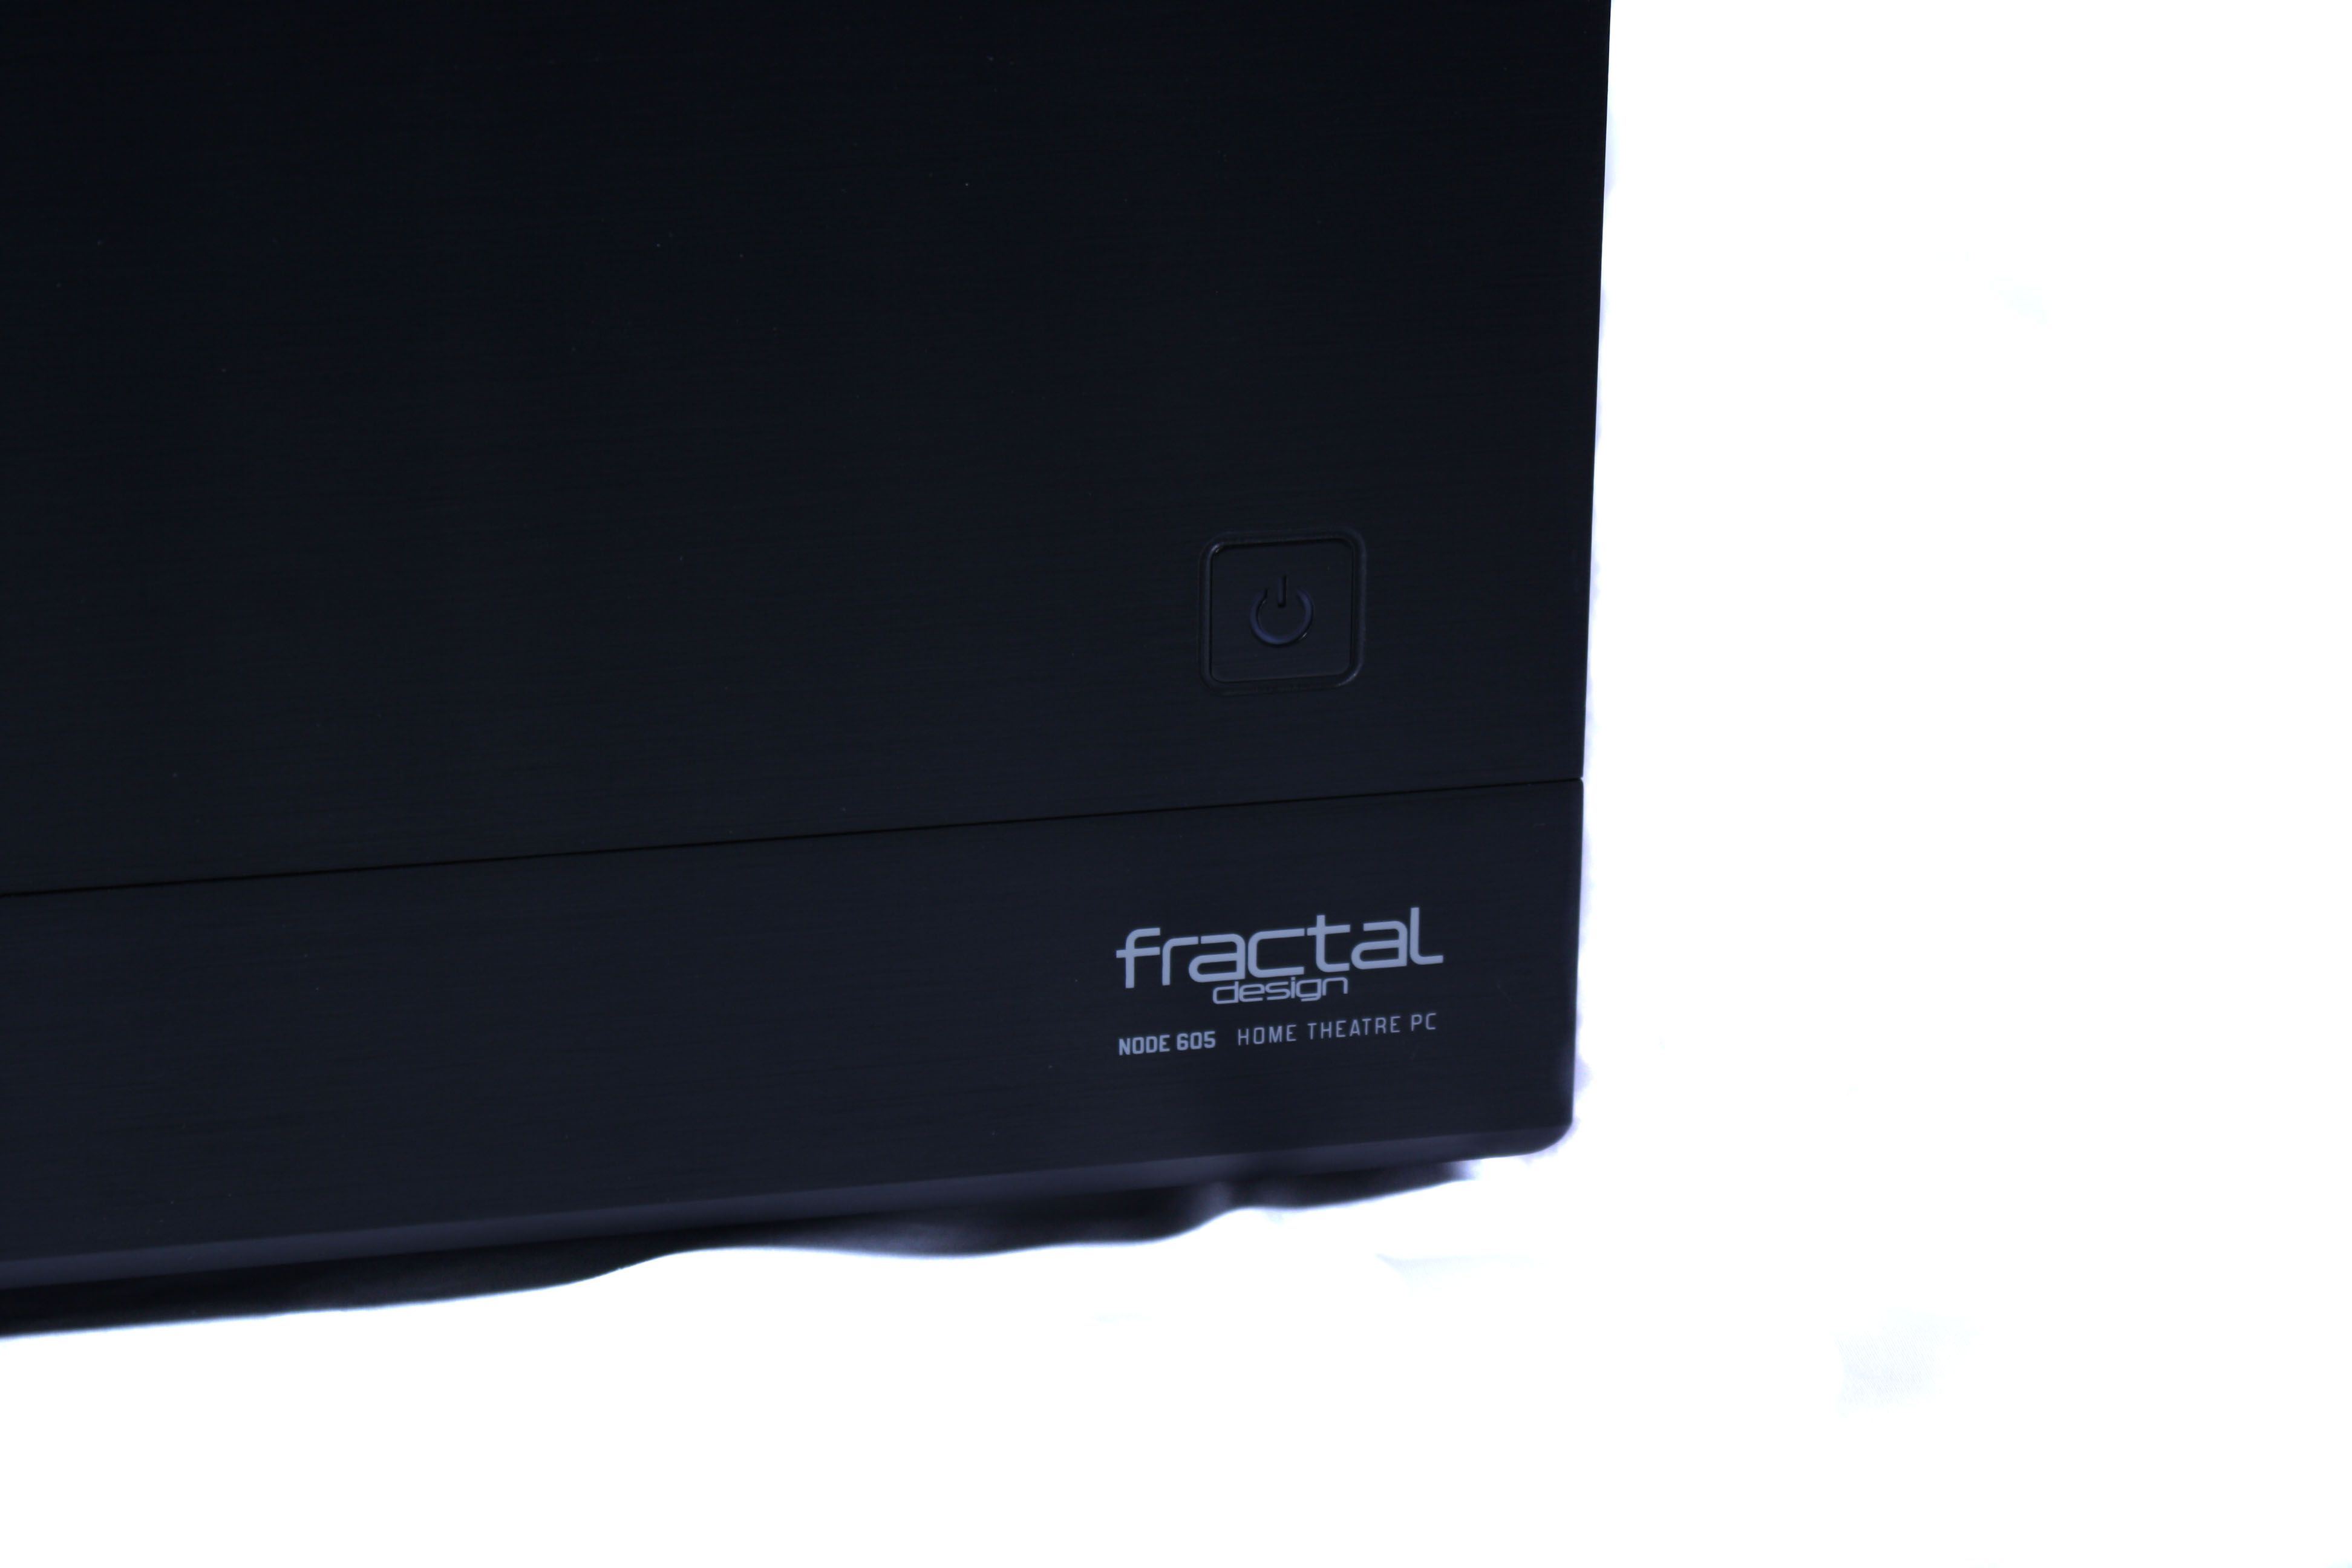 Fractal Design Node 605 Logo